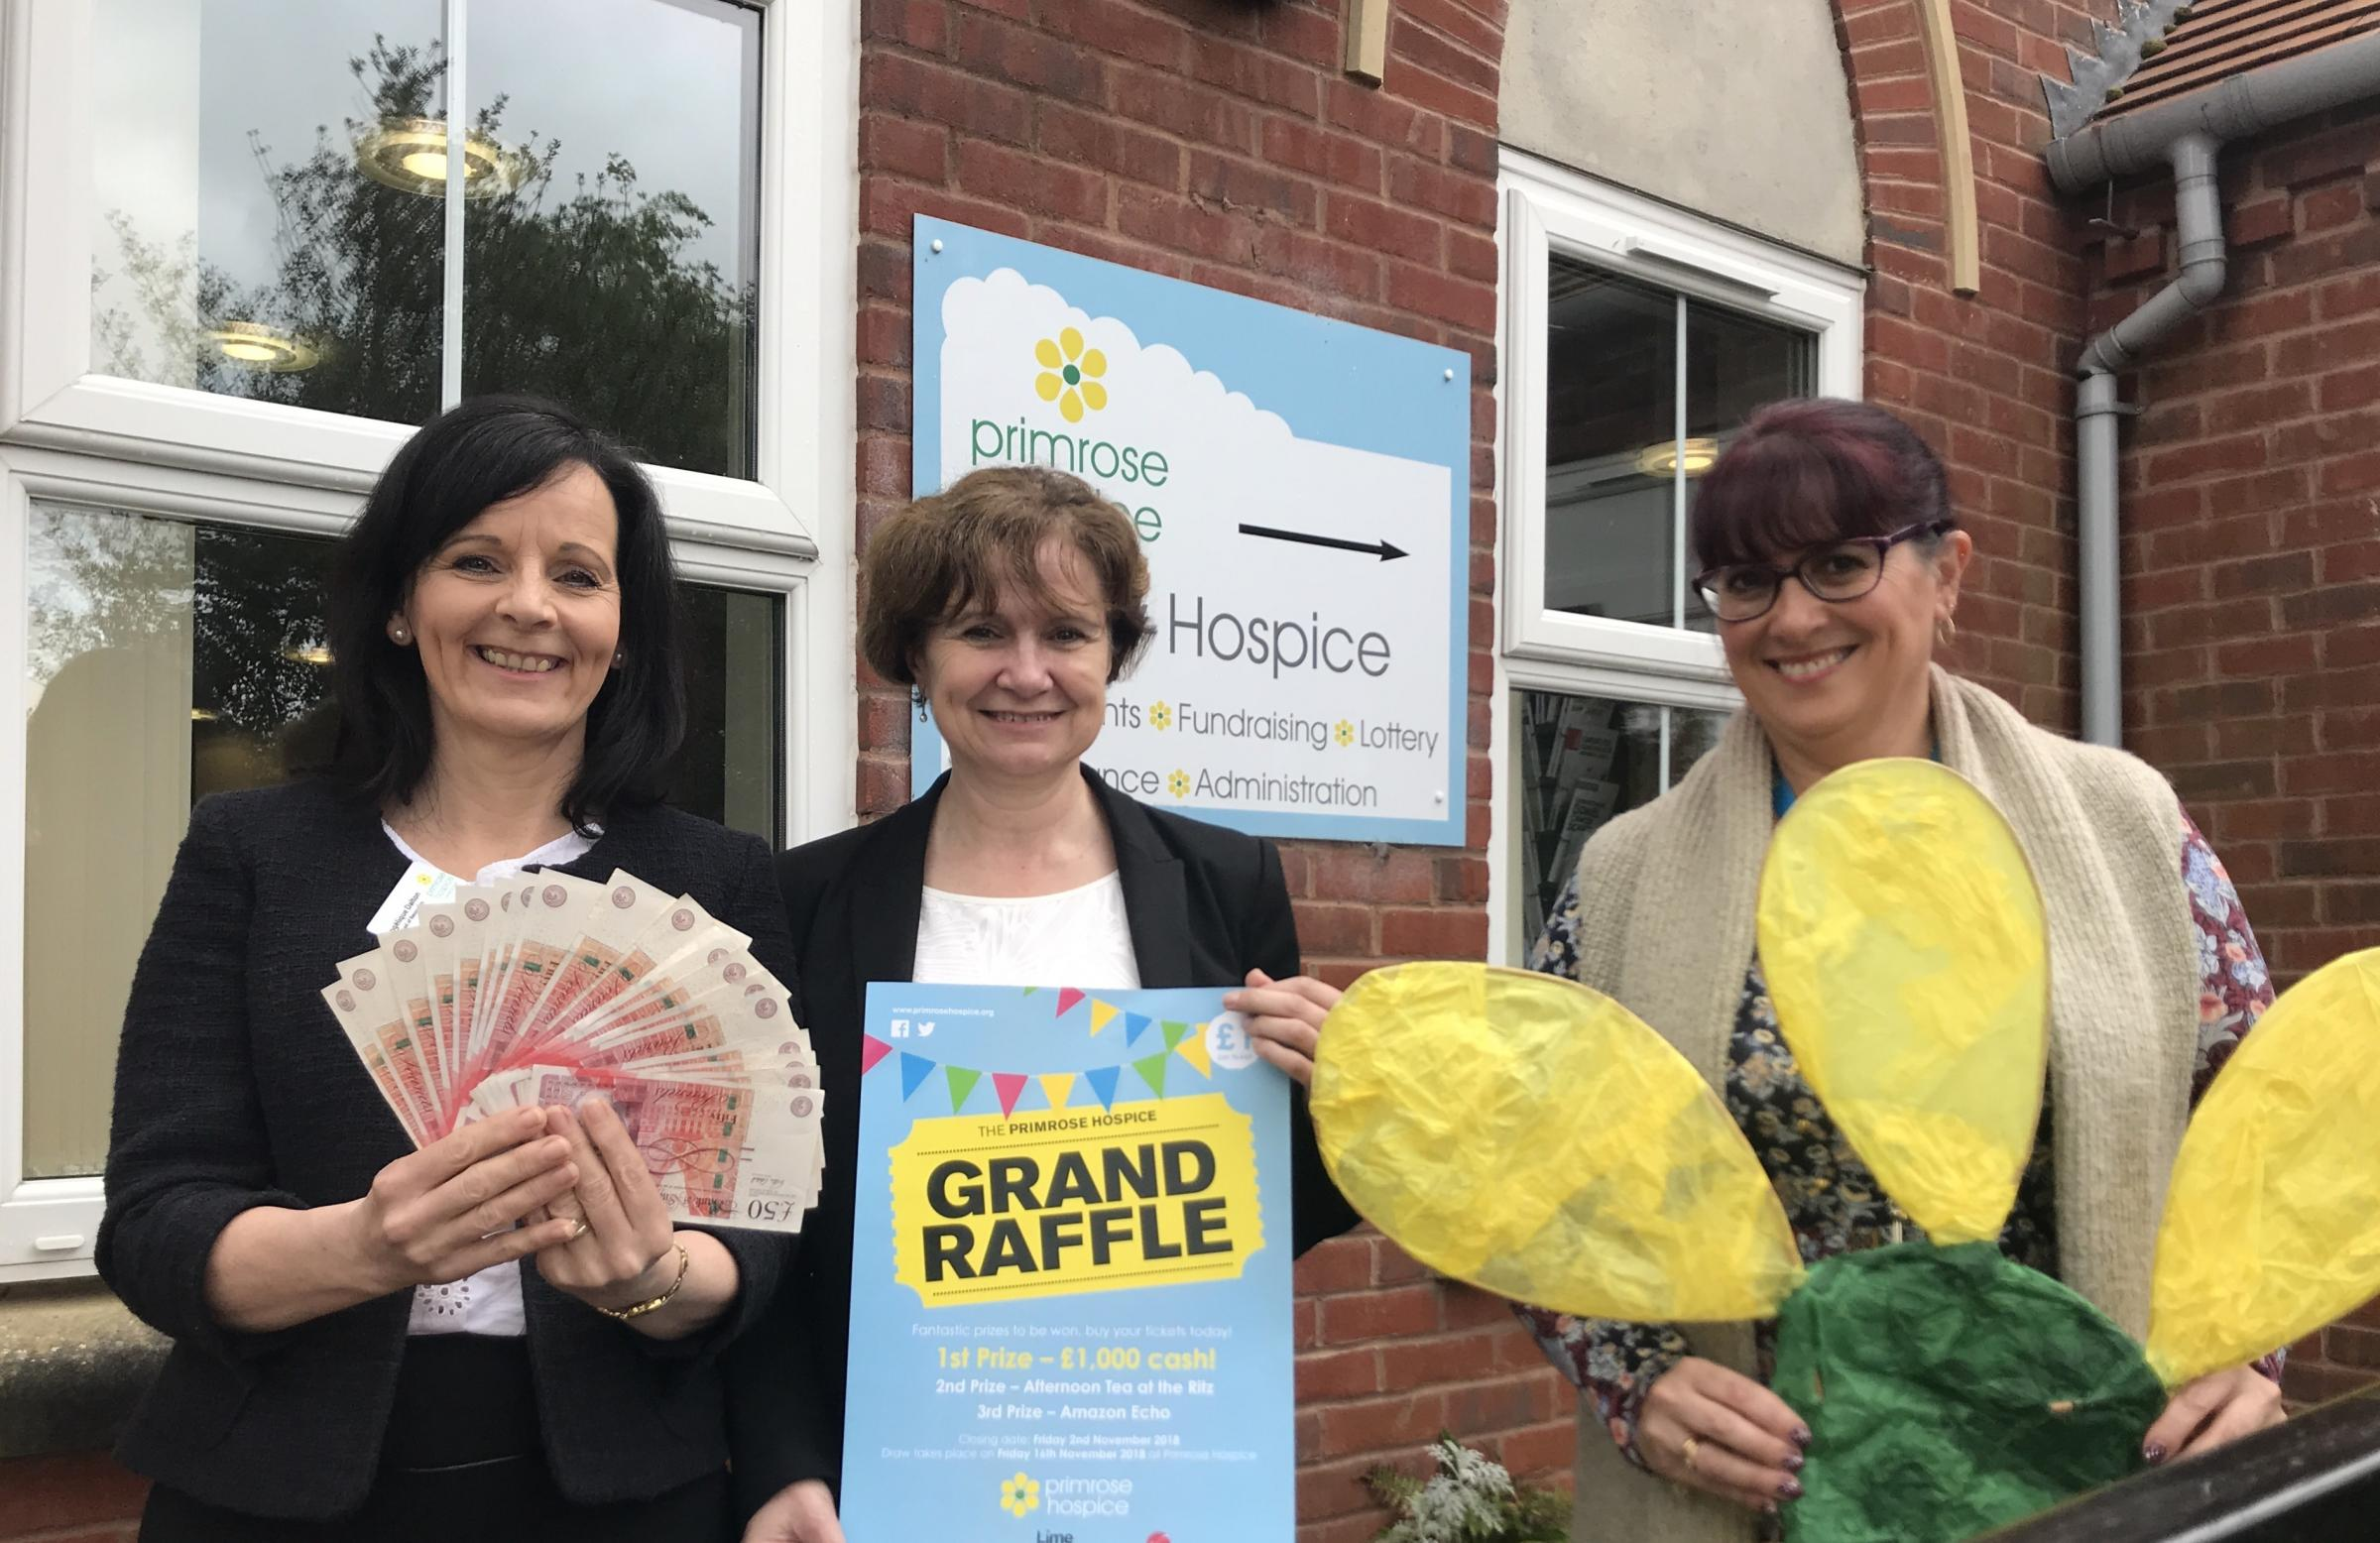 Head of resources Angelique Dalton, Tina Circus from raffle sponsors Thomas Horton LLP Solicitors, and hospice volunteers manager Jo Wright